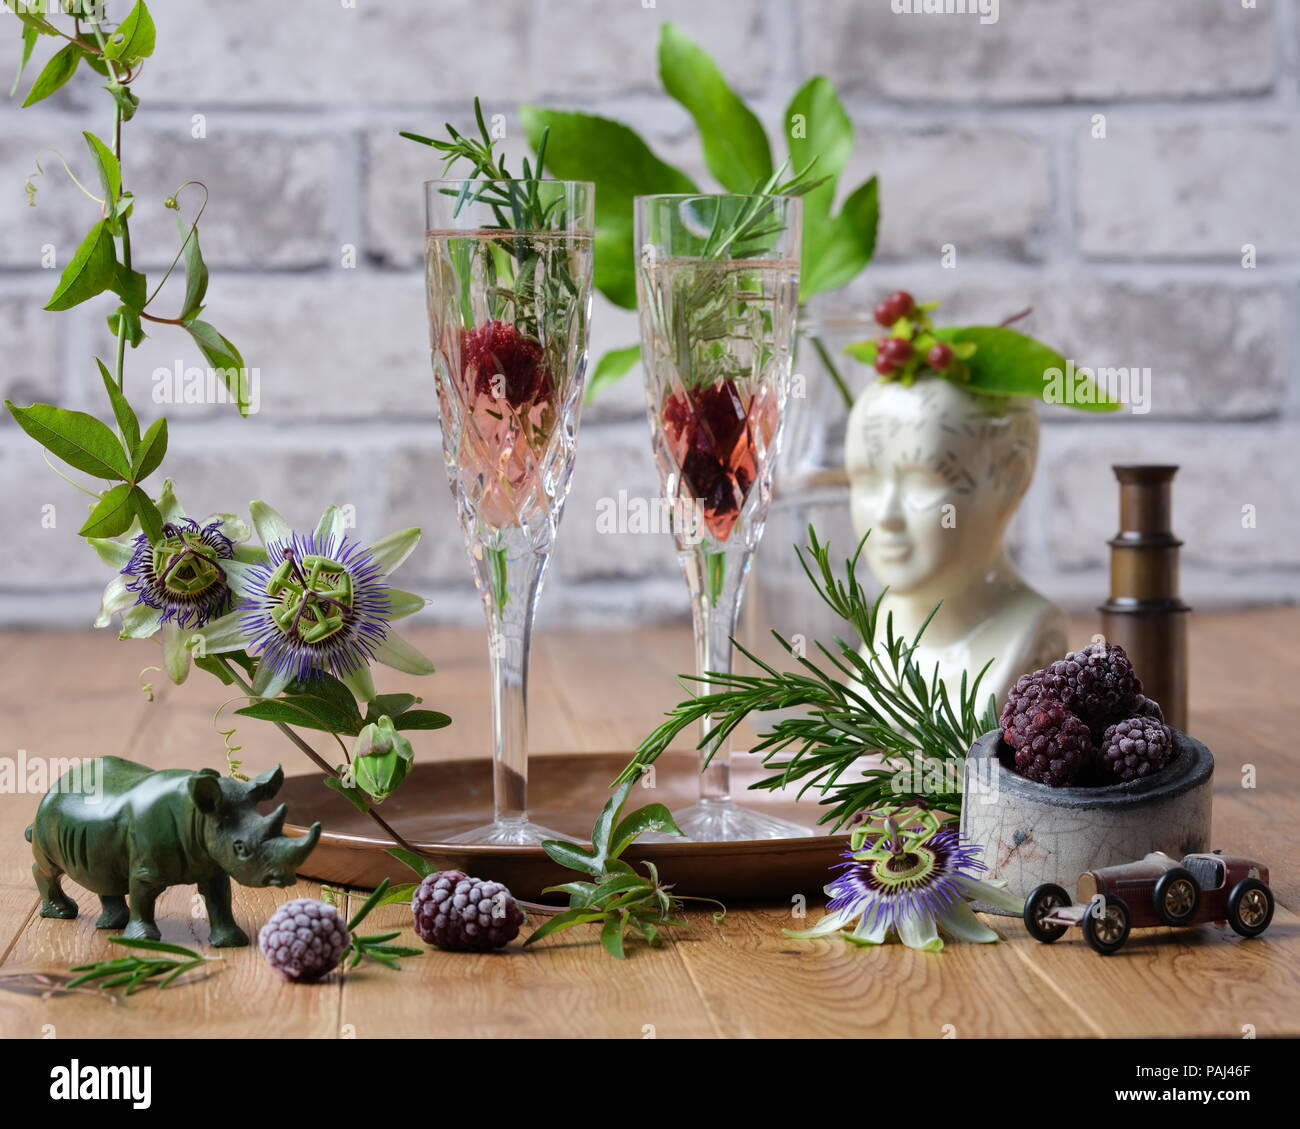 Still Life Study of curious objects including a vintage telescope, frozen blackberries, raku pottery, flower & two crystal glass flutes with prosecco - Stock Image